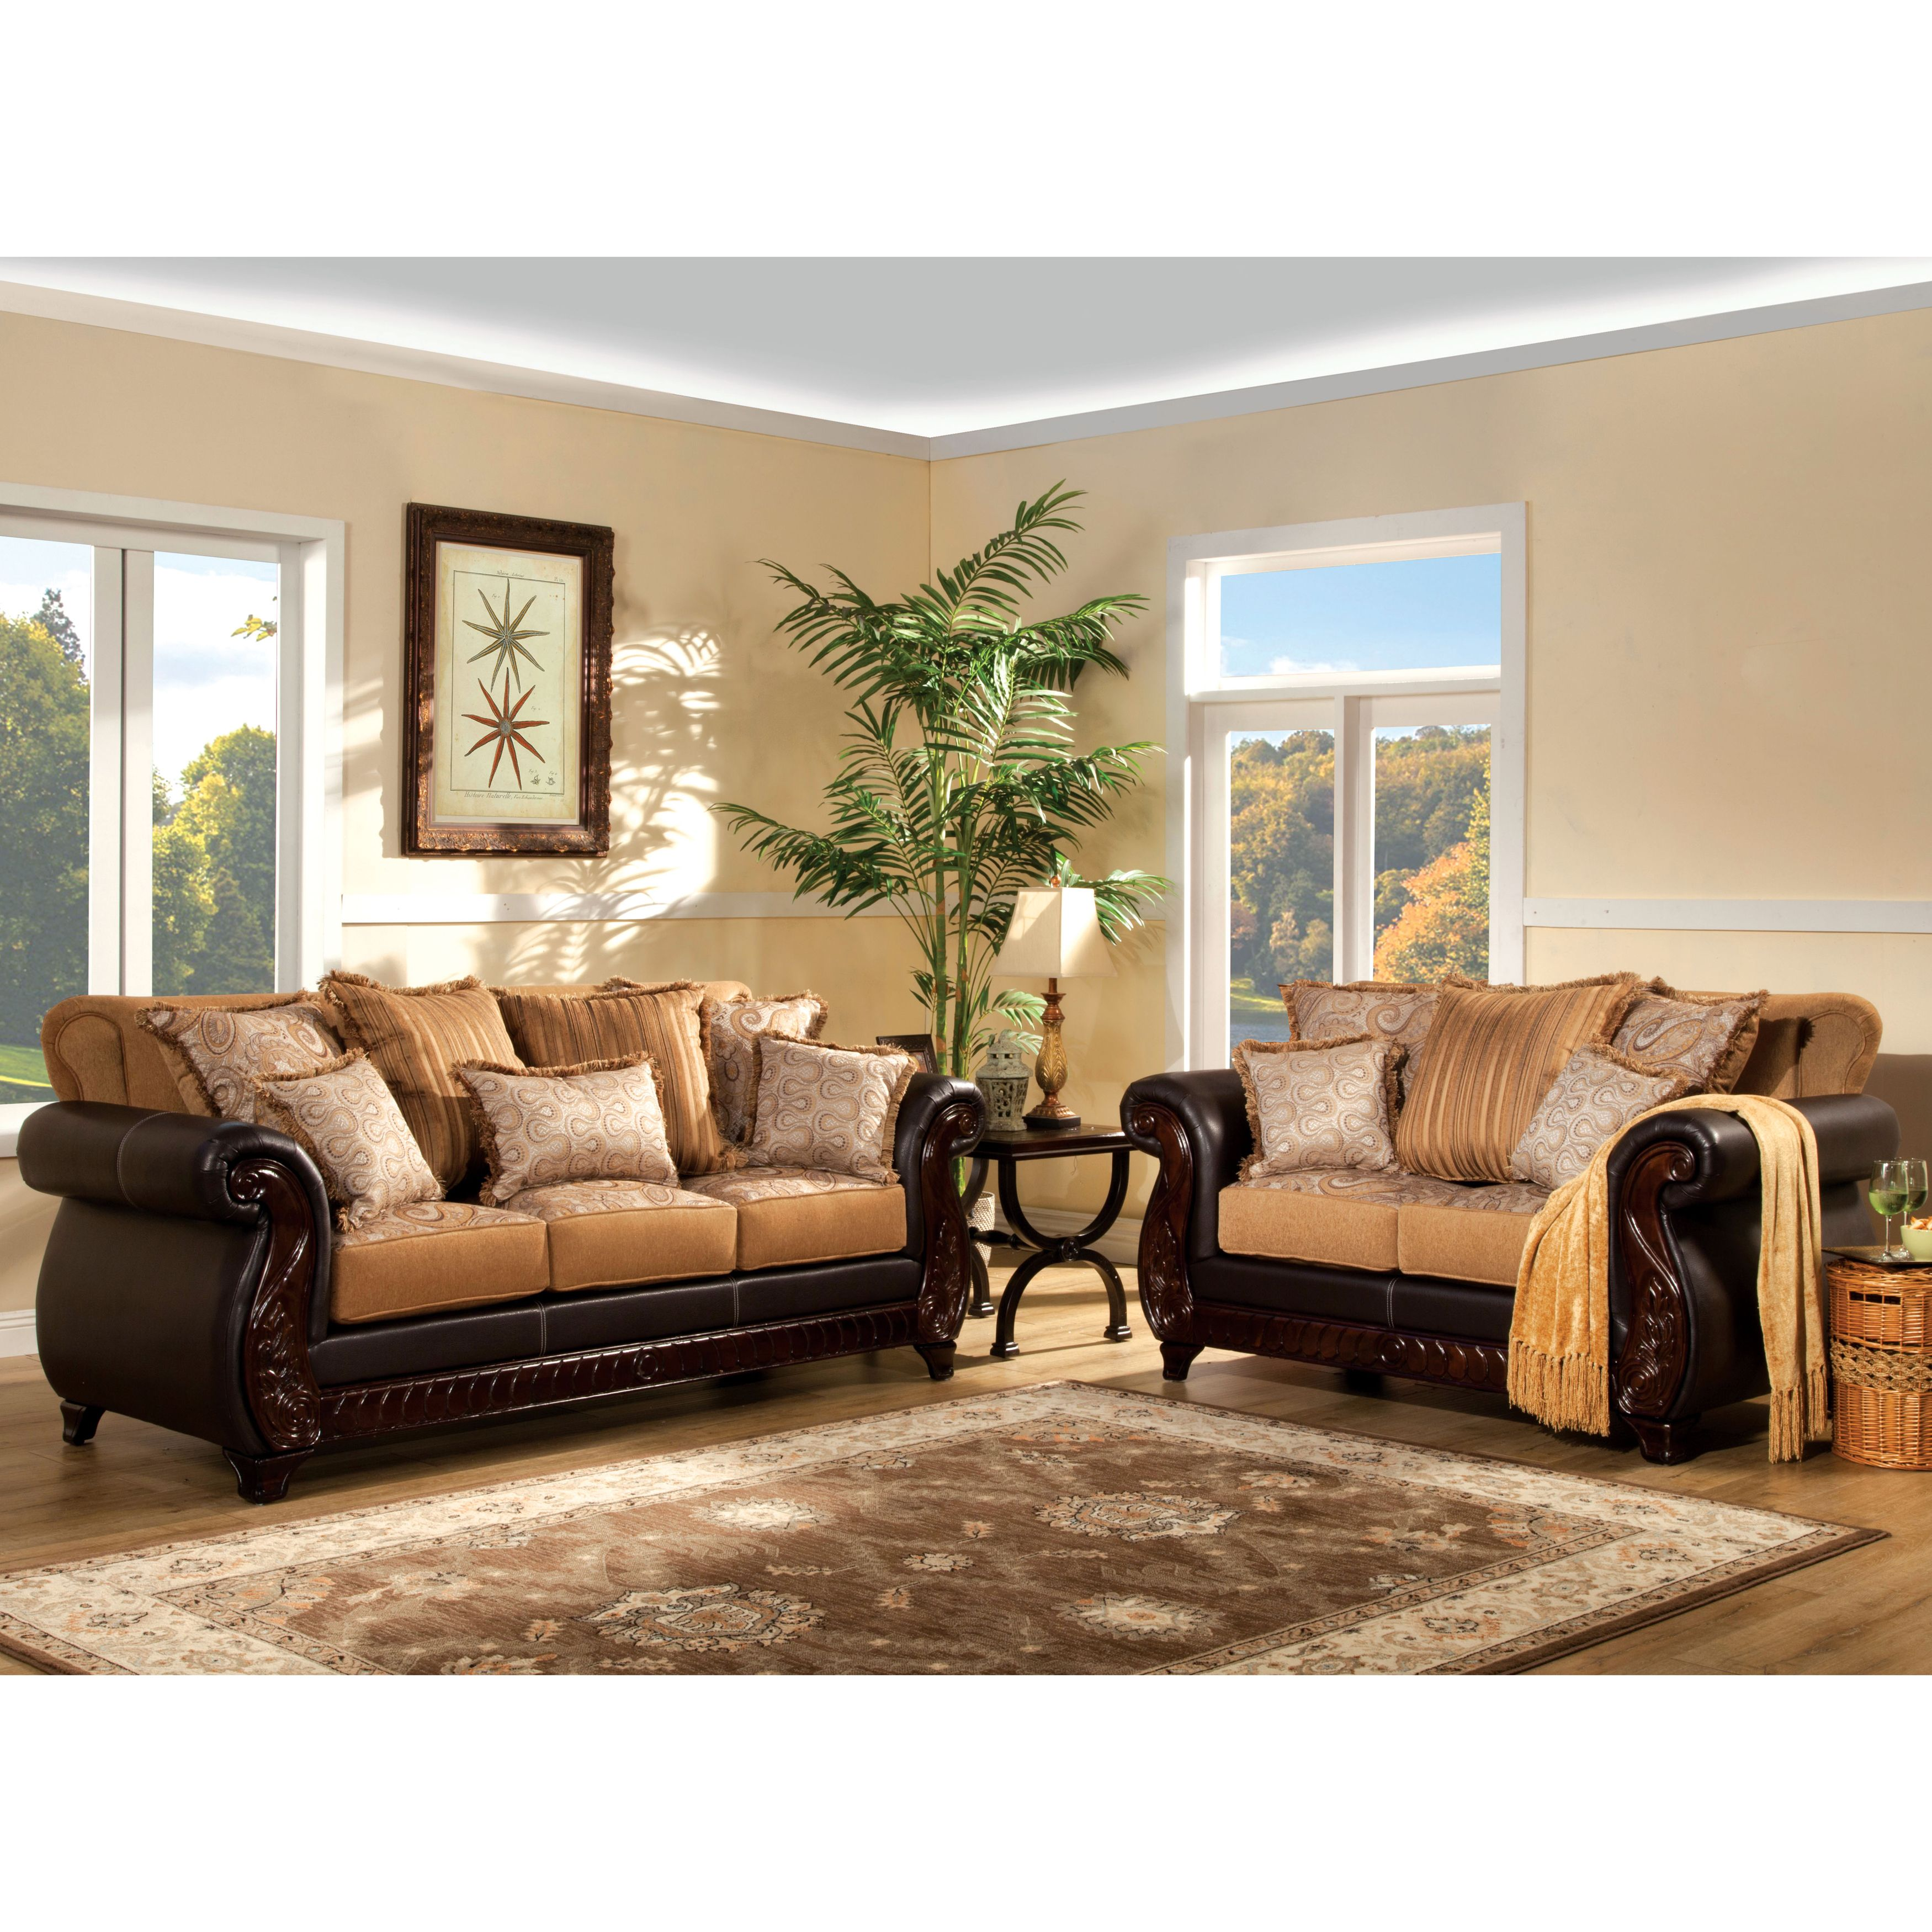 This traditional style sofa set combines fabric